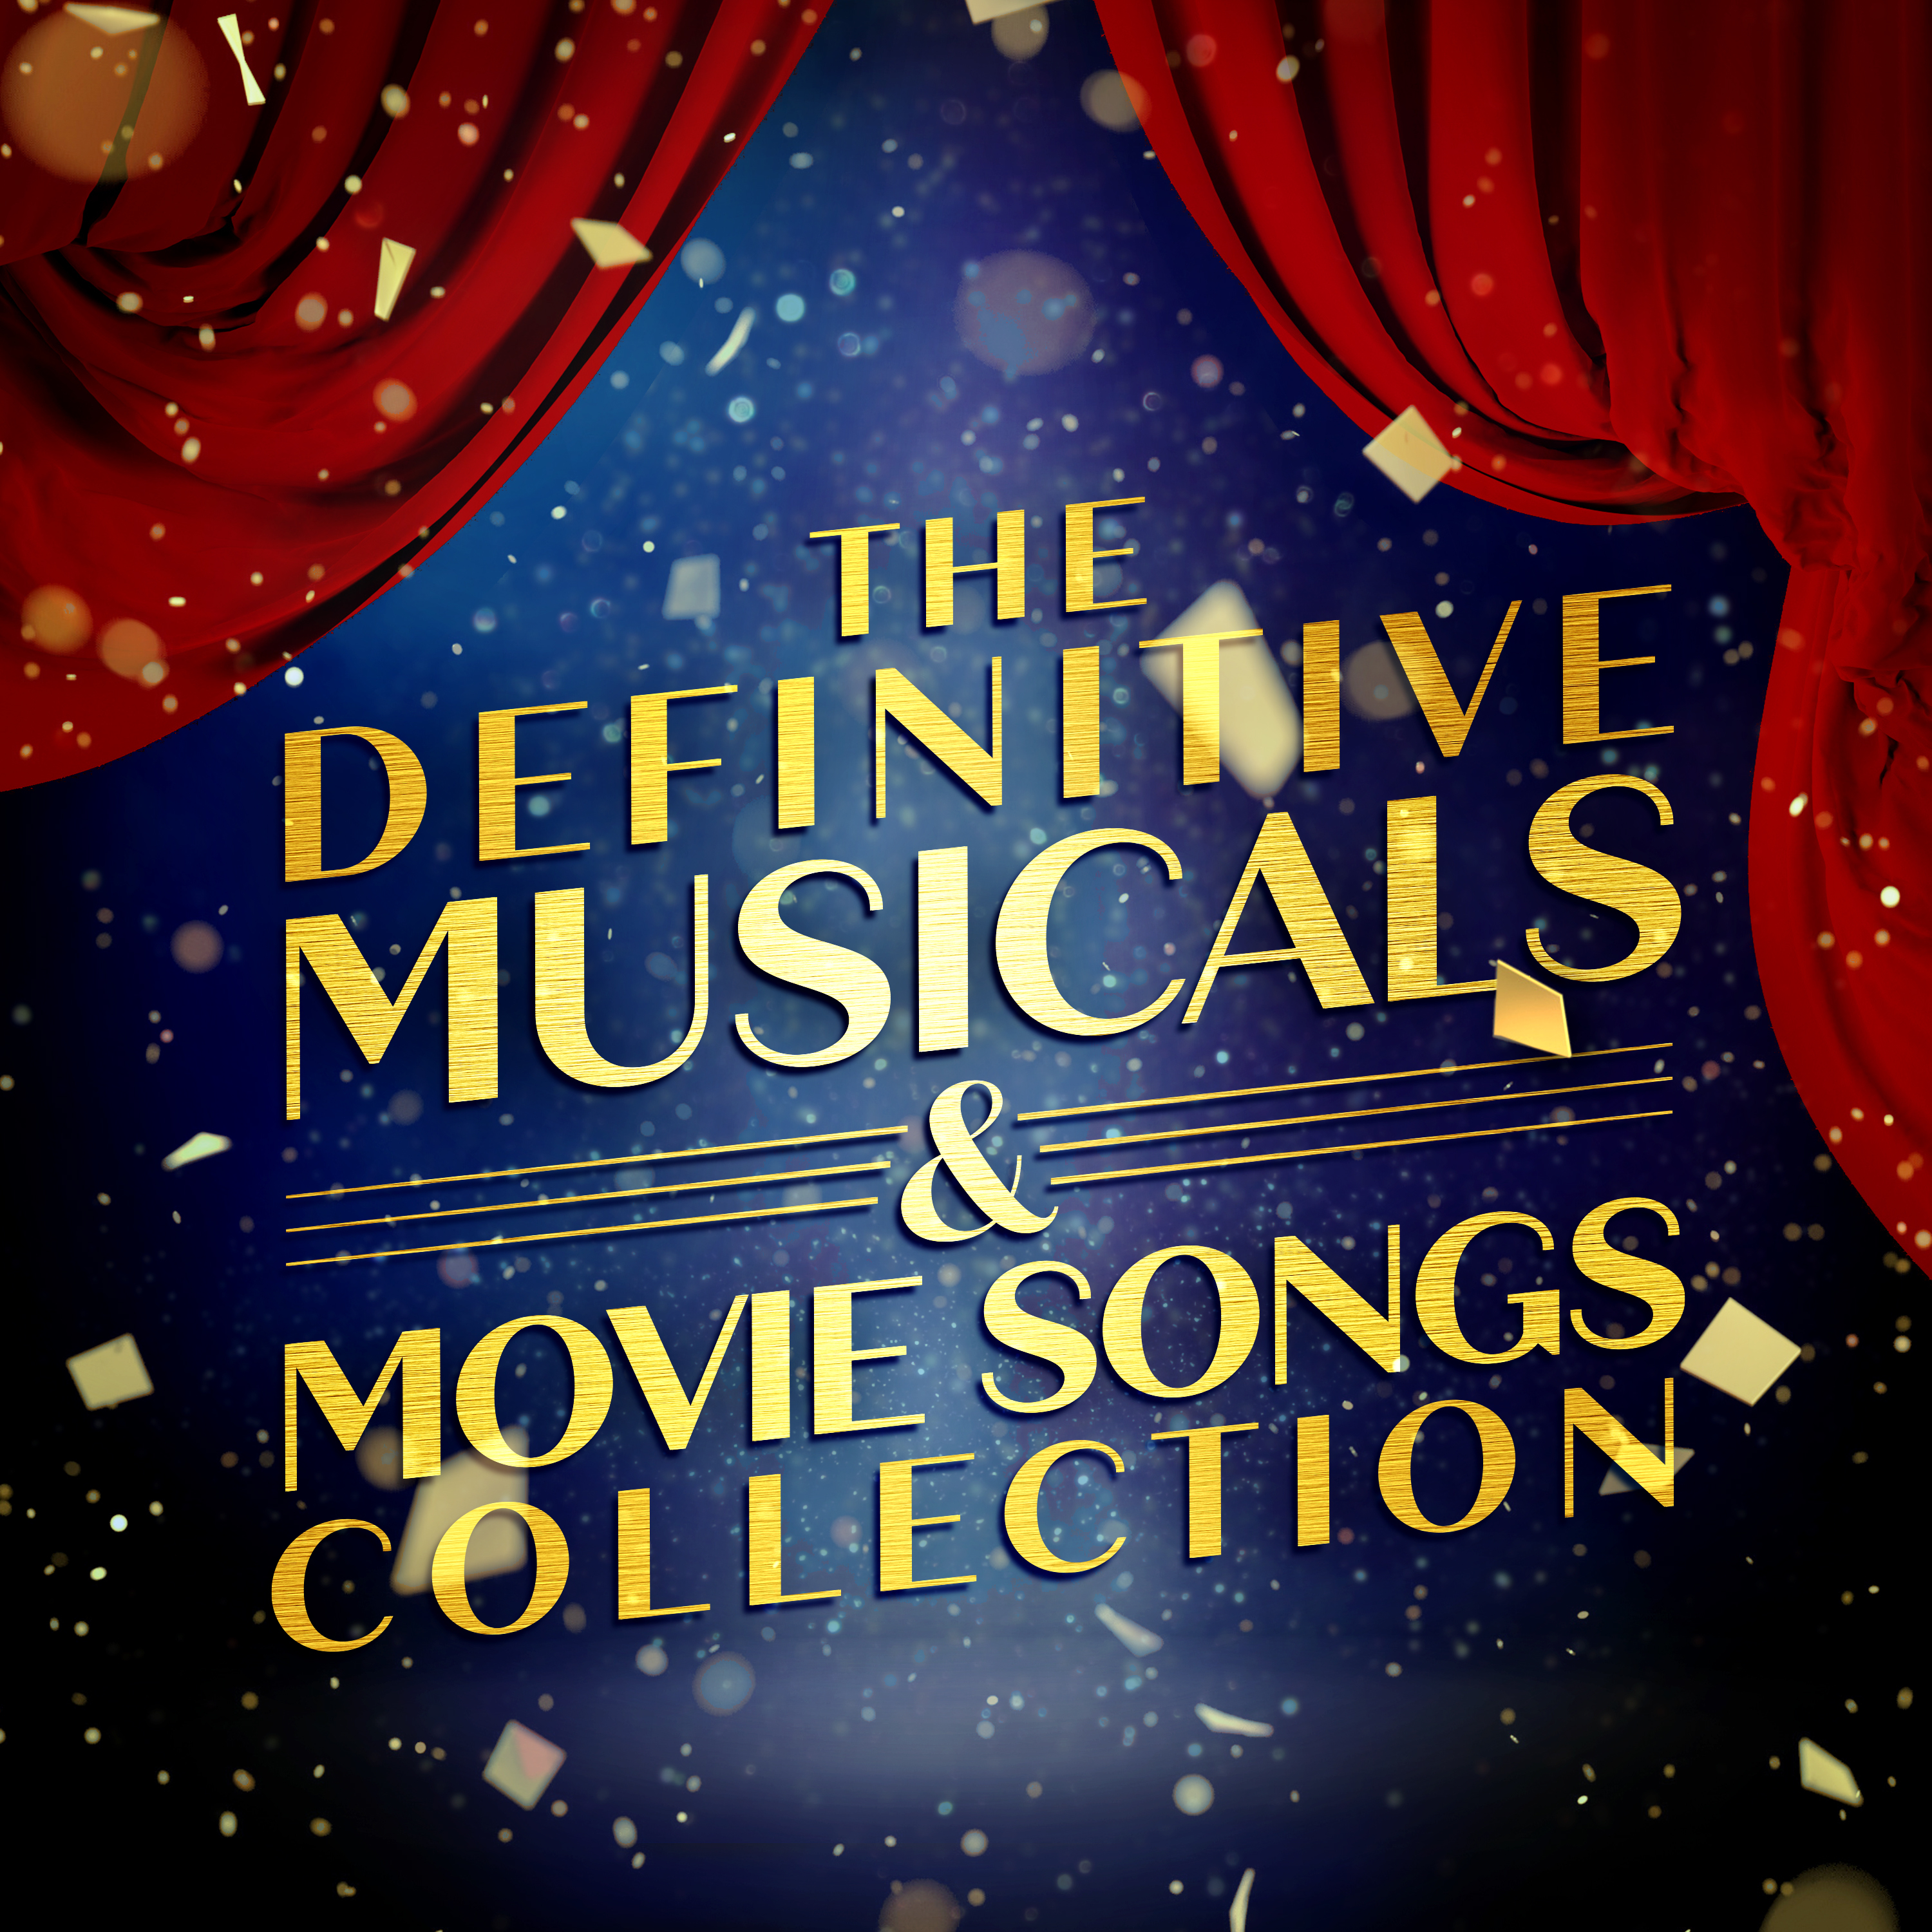 The Definitive Musicals & Movie Songs Collection